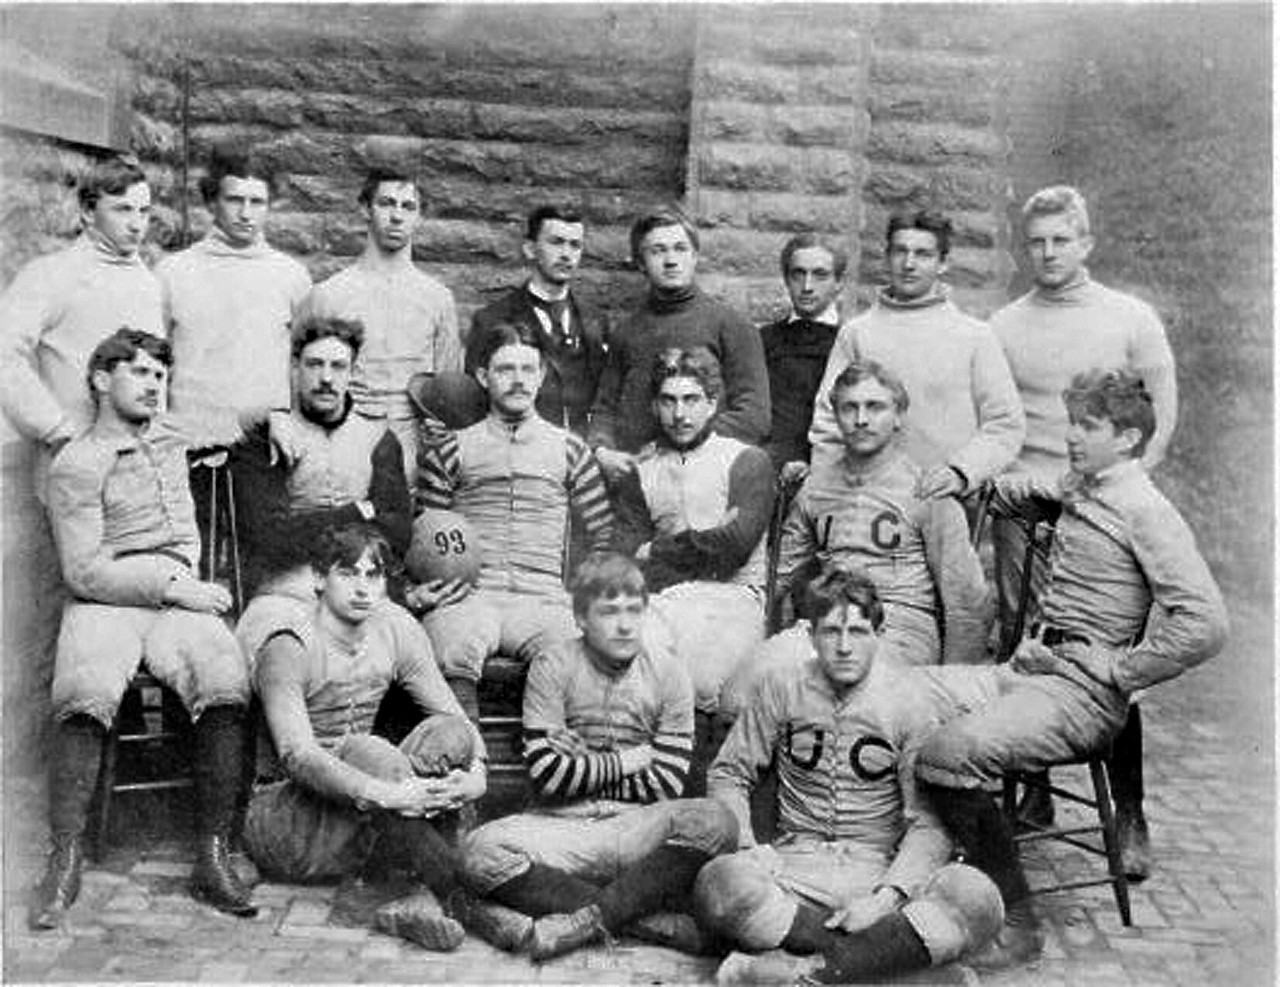 Black and white photo of 1890s football team